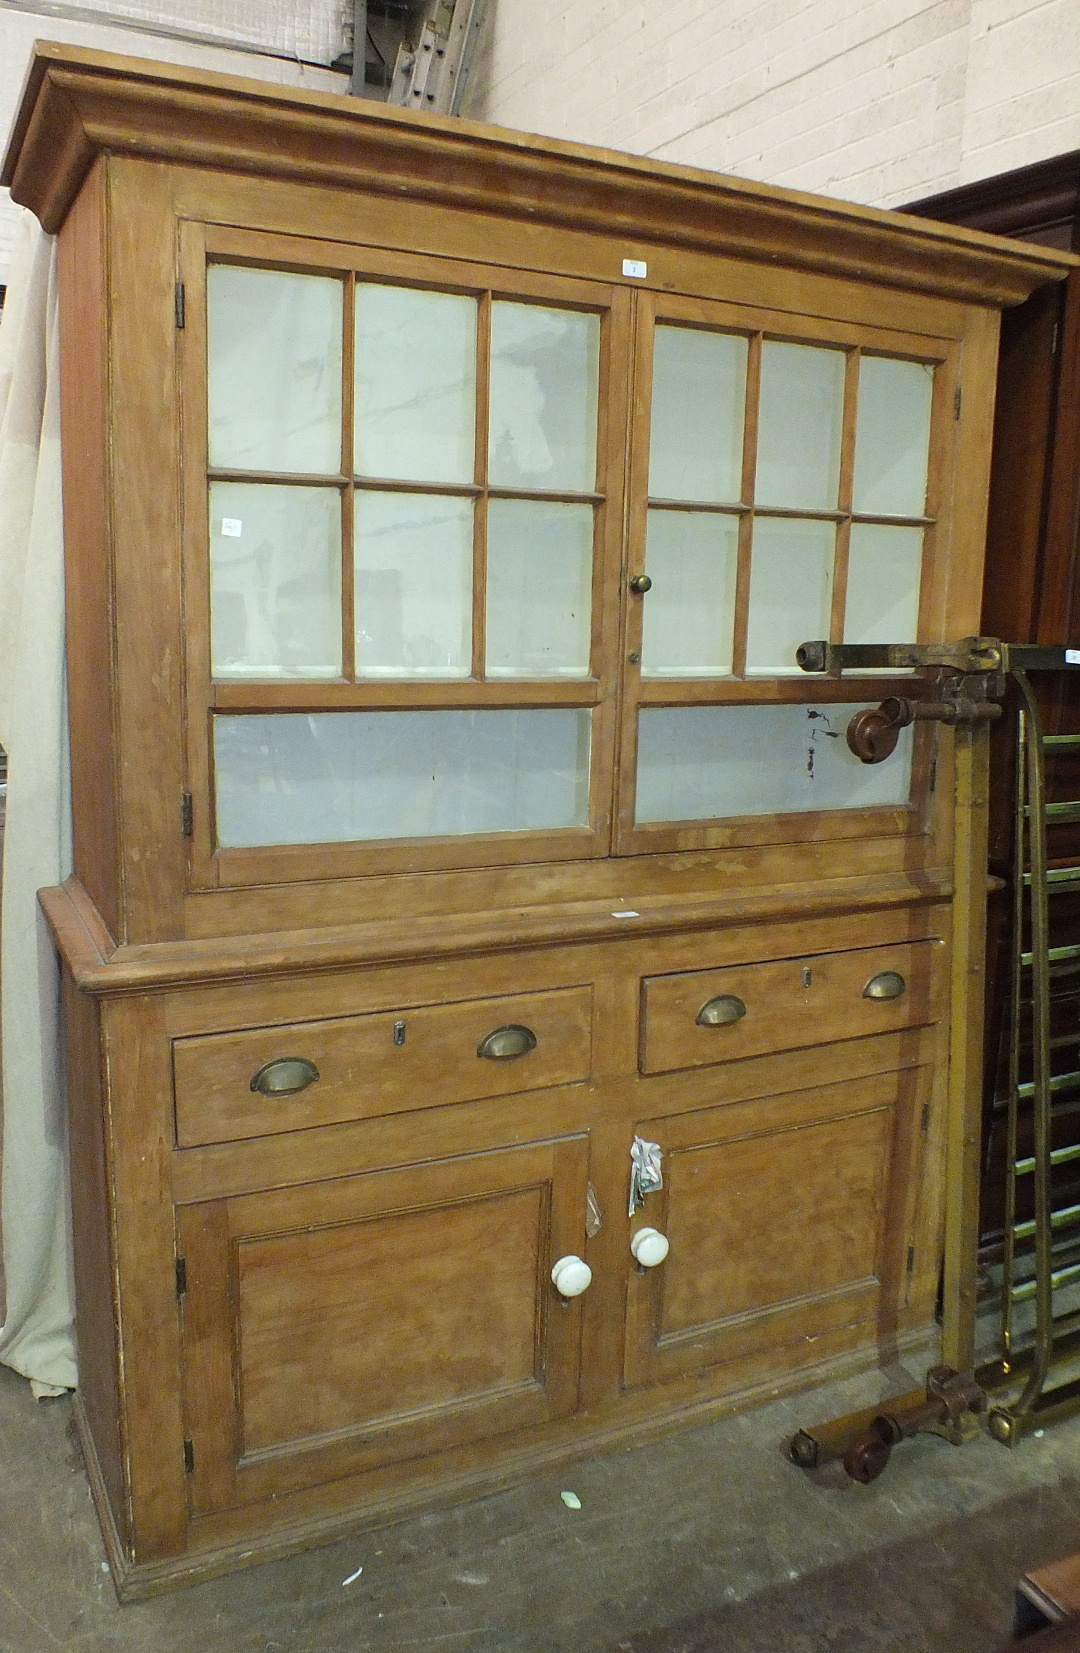 Lot 3 - A late-19th/early-20th century stripped pine dresser, the upper shelved section fitted with a pair